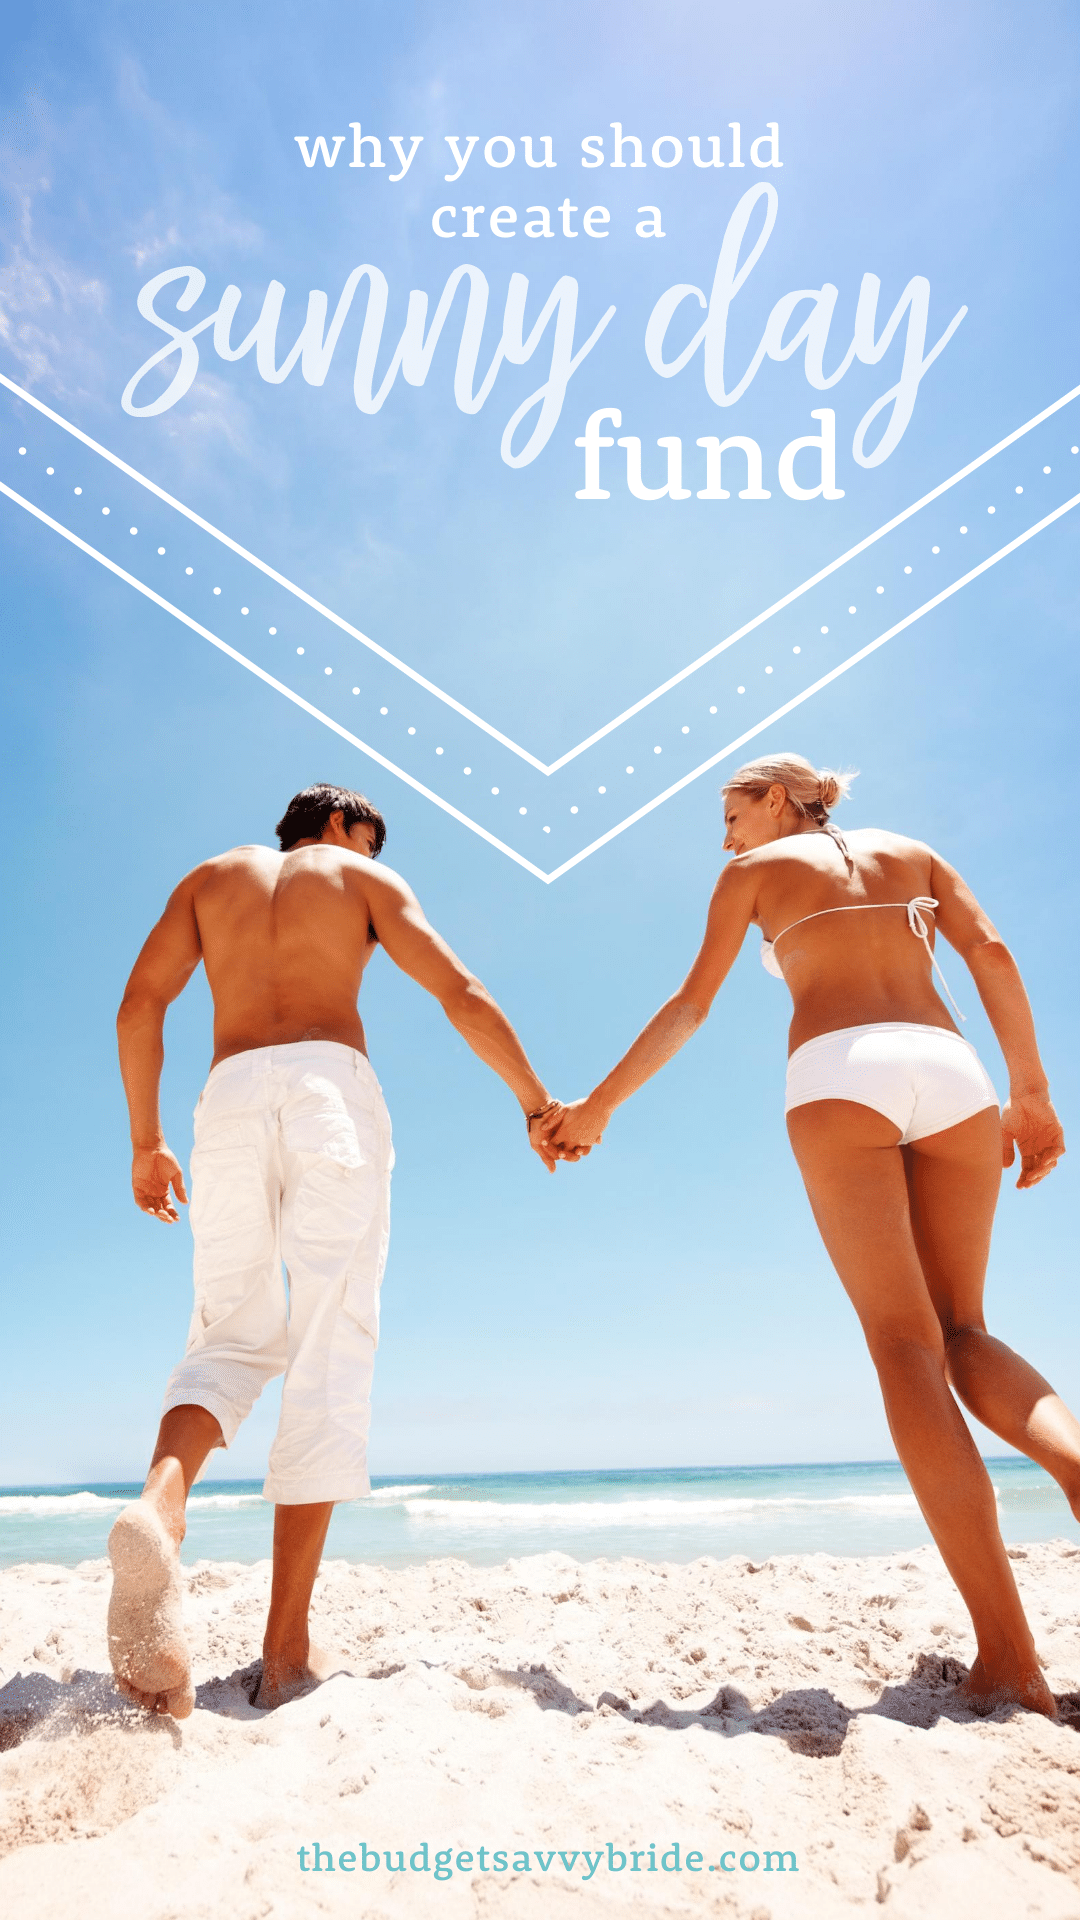 why you should create a sunny day fund